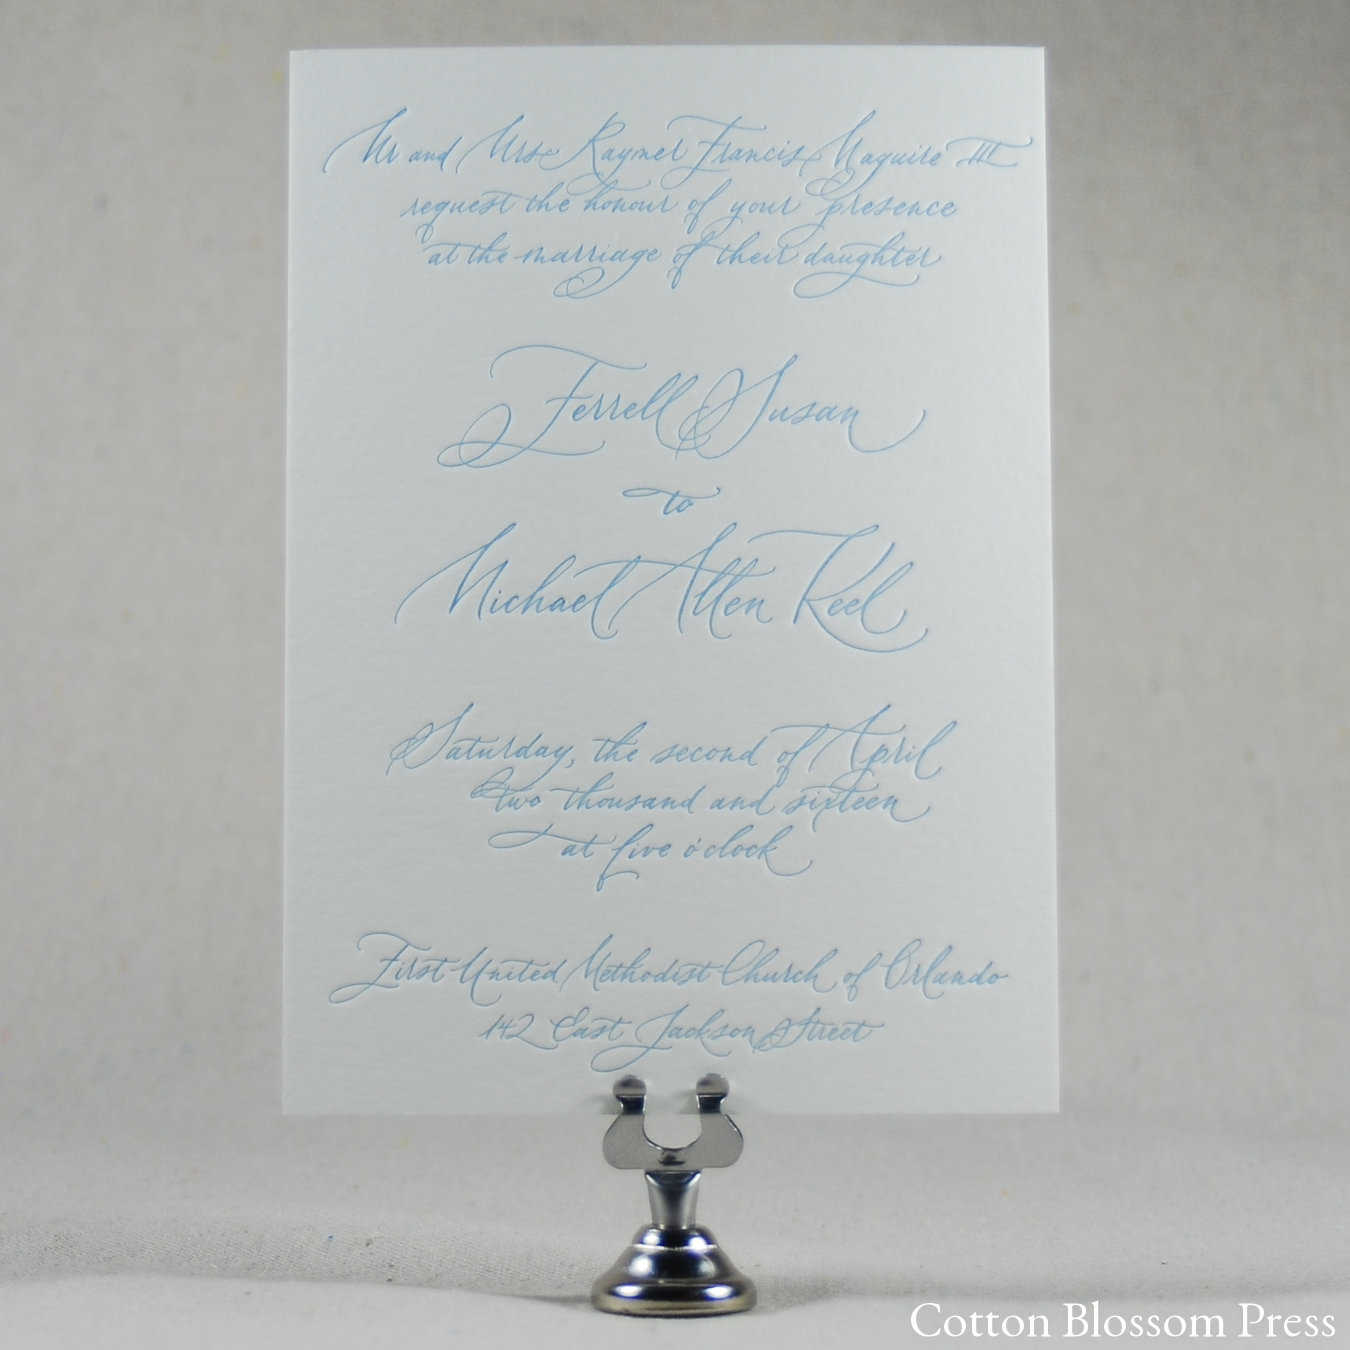 CBP-Wedding_Ferrell_Invite.JPG